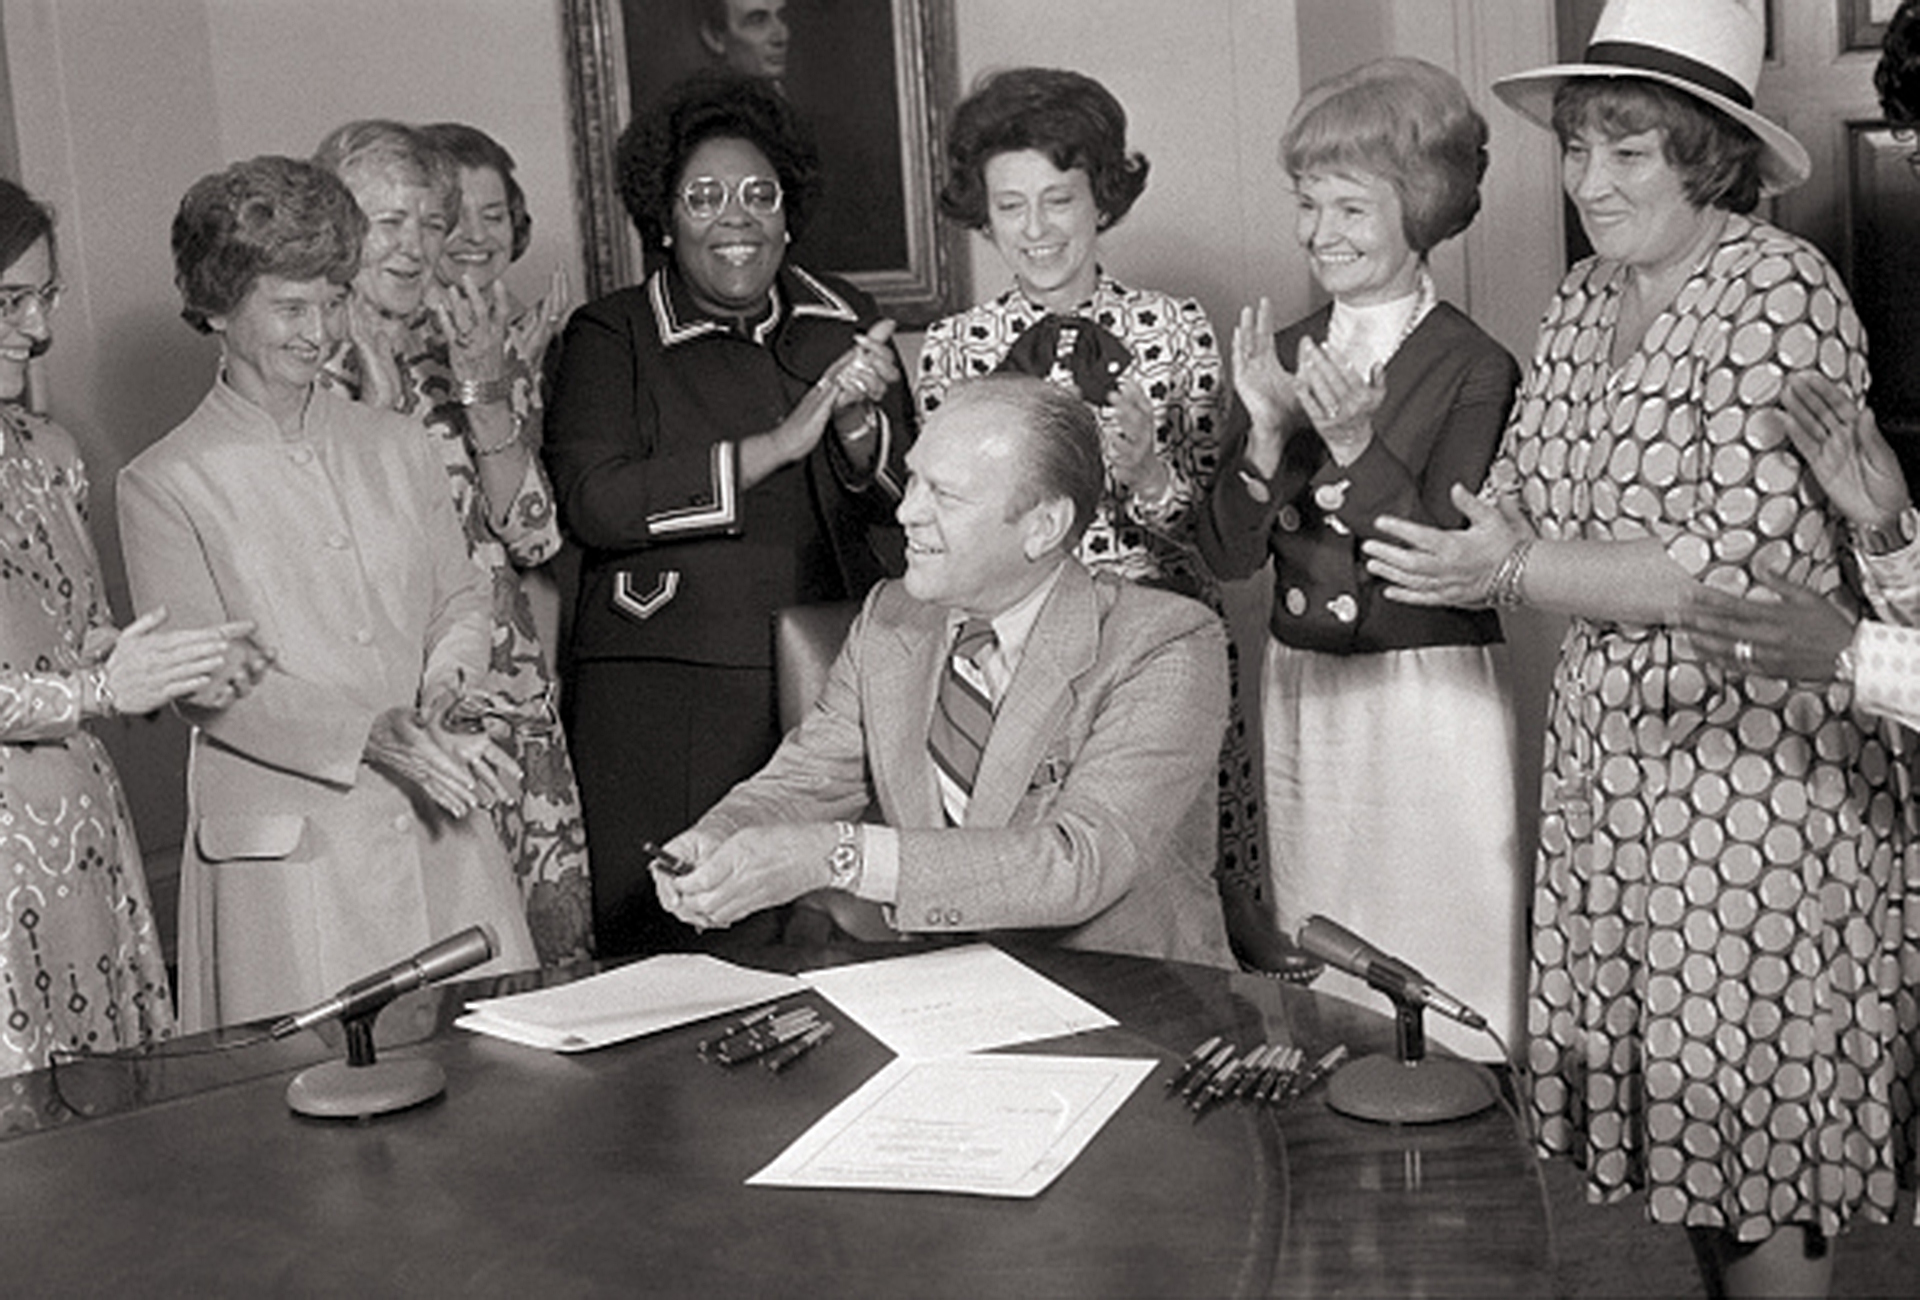 Margaret Heckler at President Ford's signing of the Women's Equality Day Proclamation in 1974.